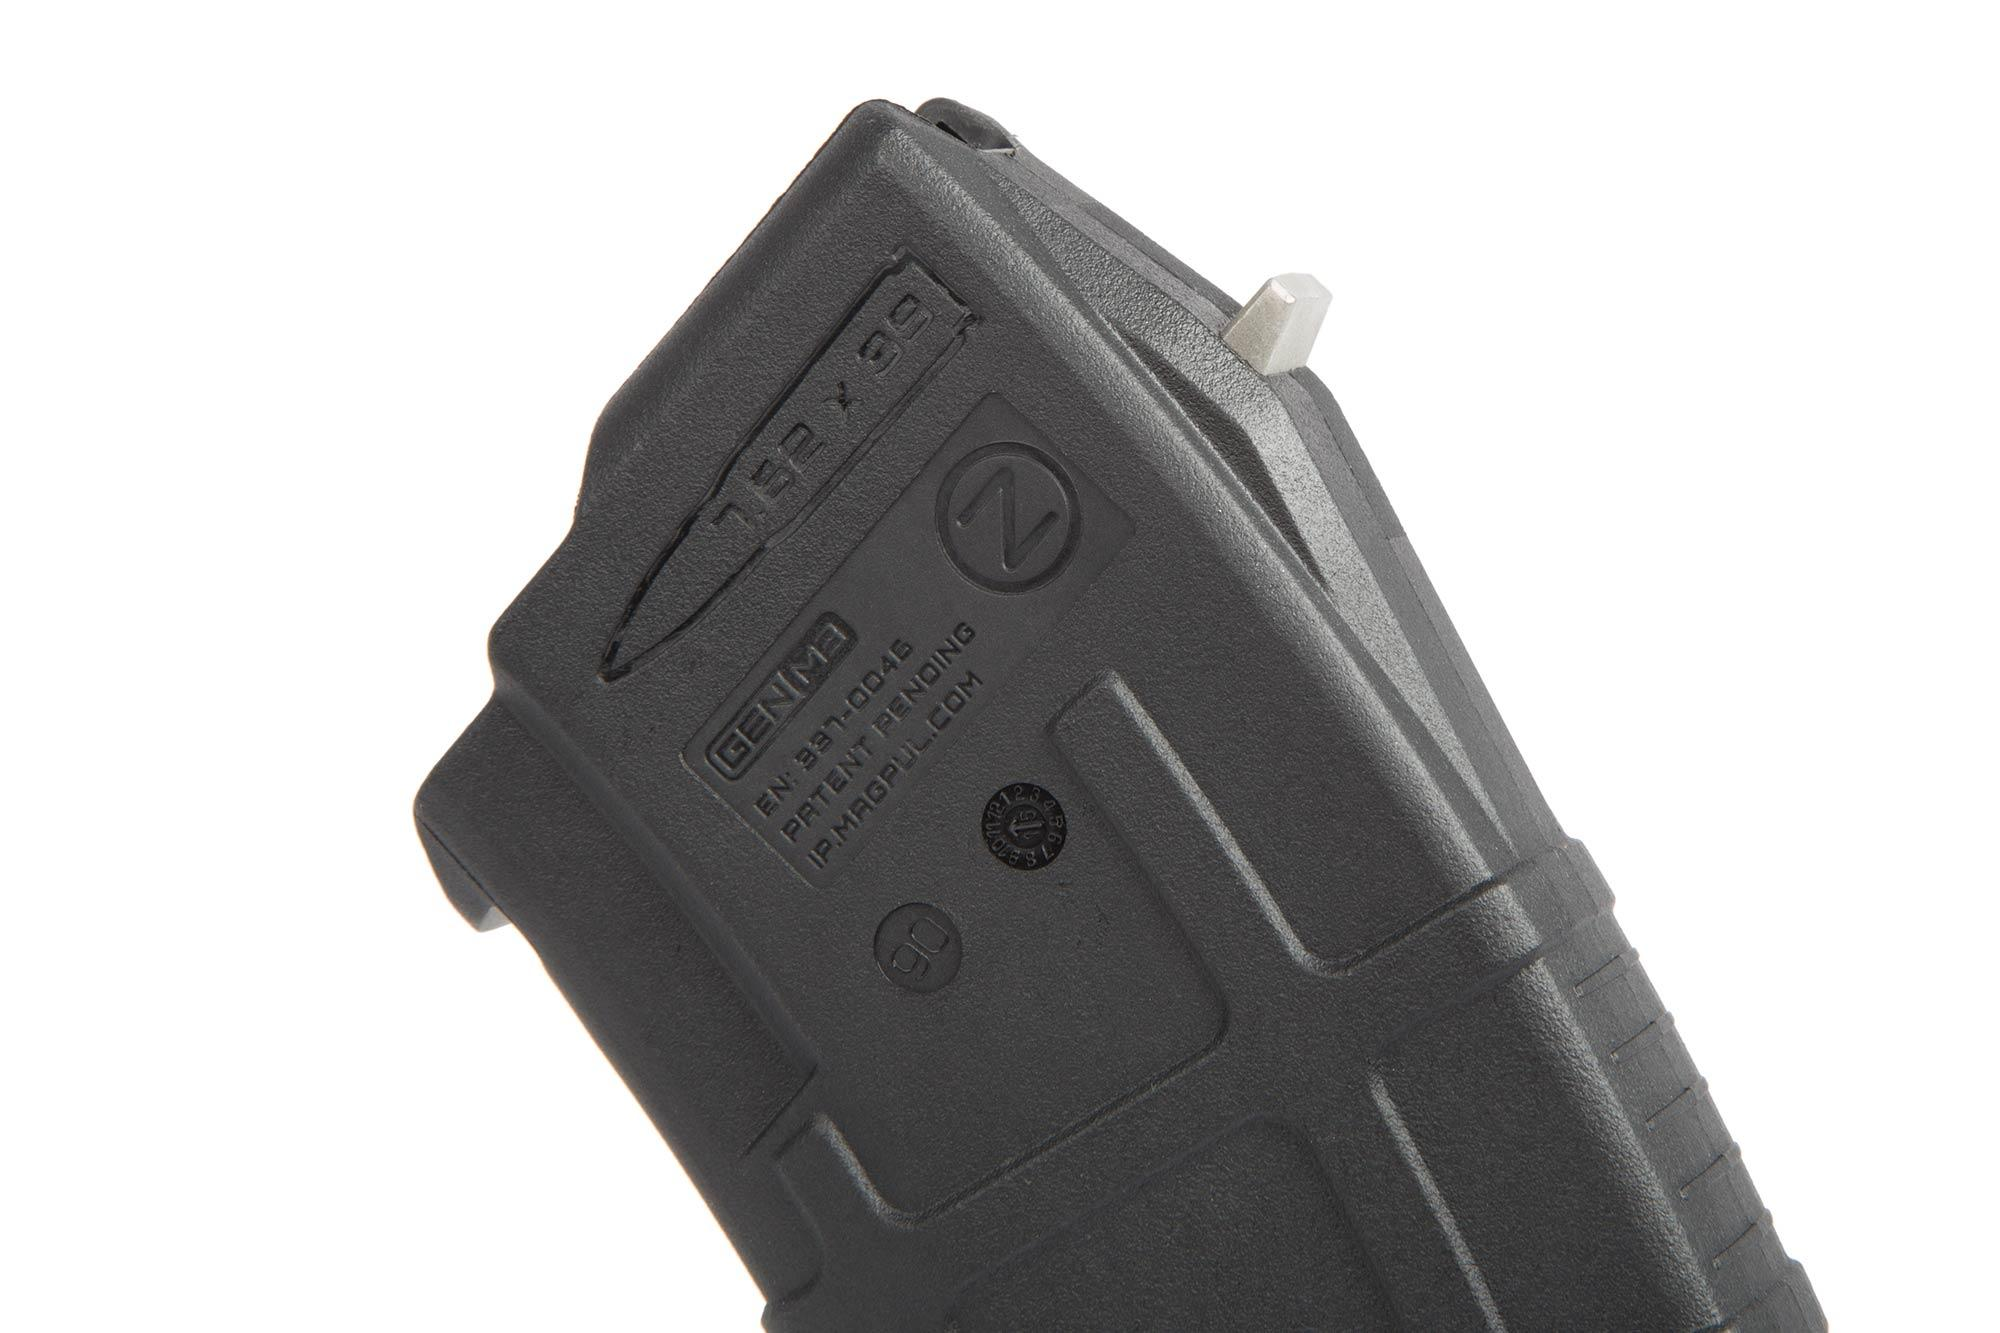 The Magpul PMAG AK Magazine holds 30 rounds of 7.62x39 ammunition in a polymer body